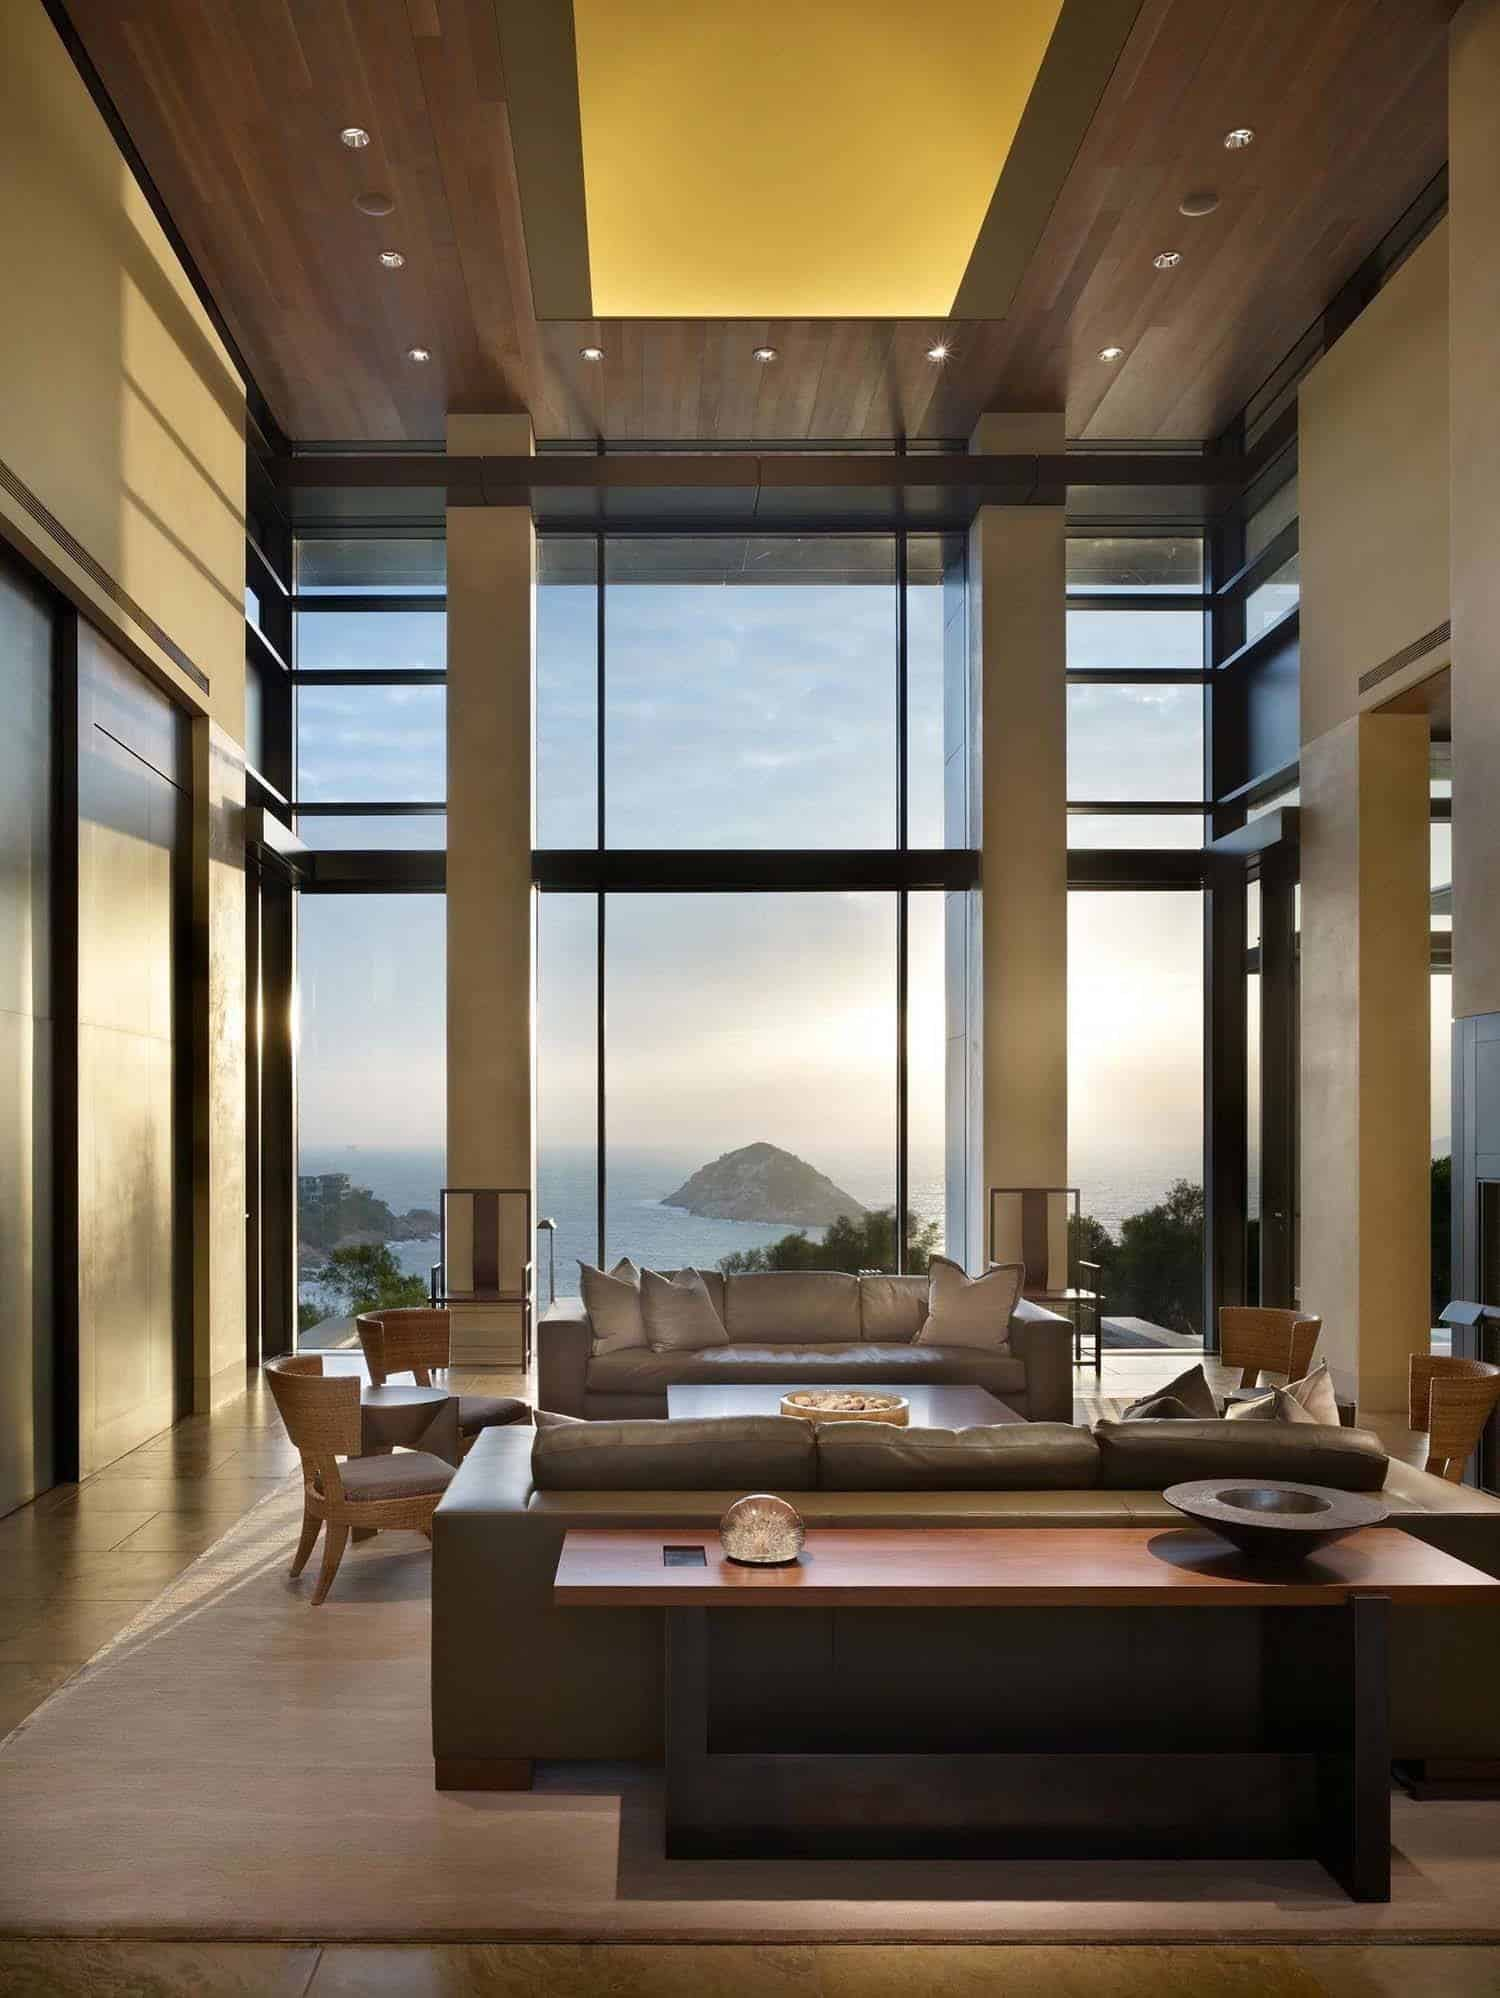 Hong Kong Villa-Olson Kundig Architects-06-1 Kindesign